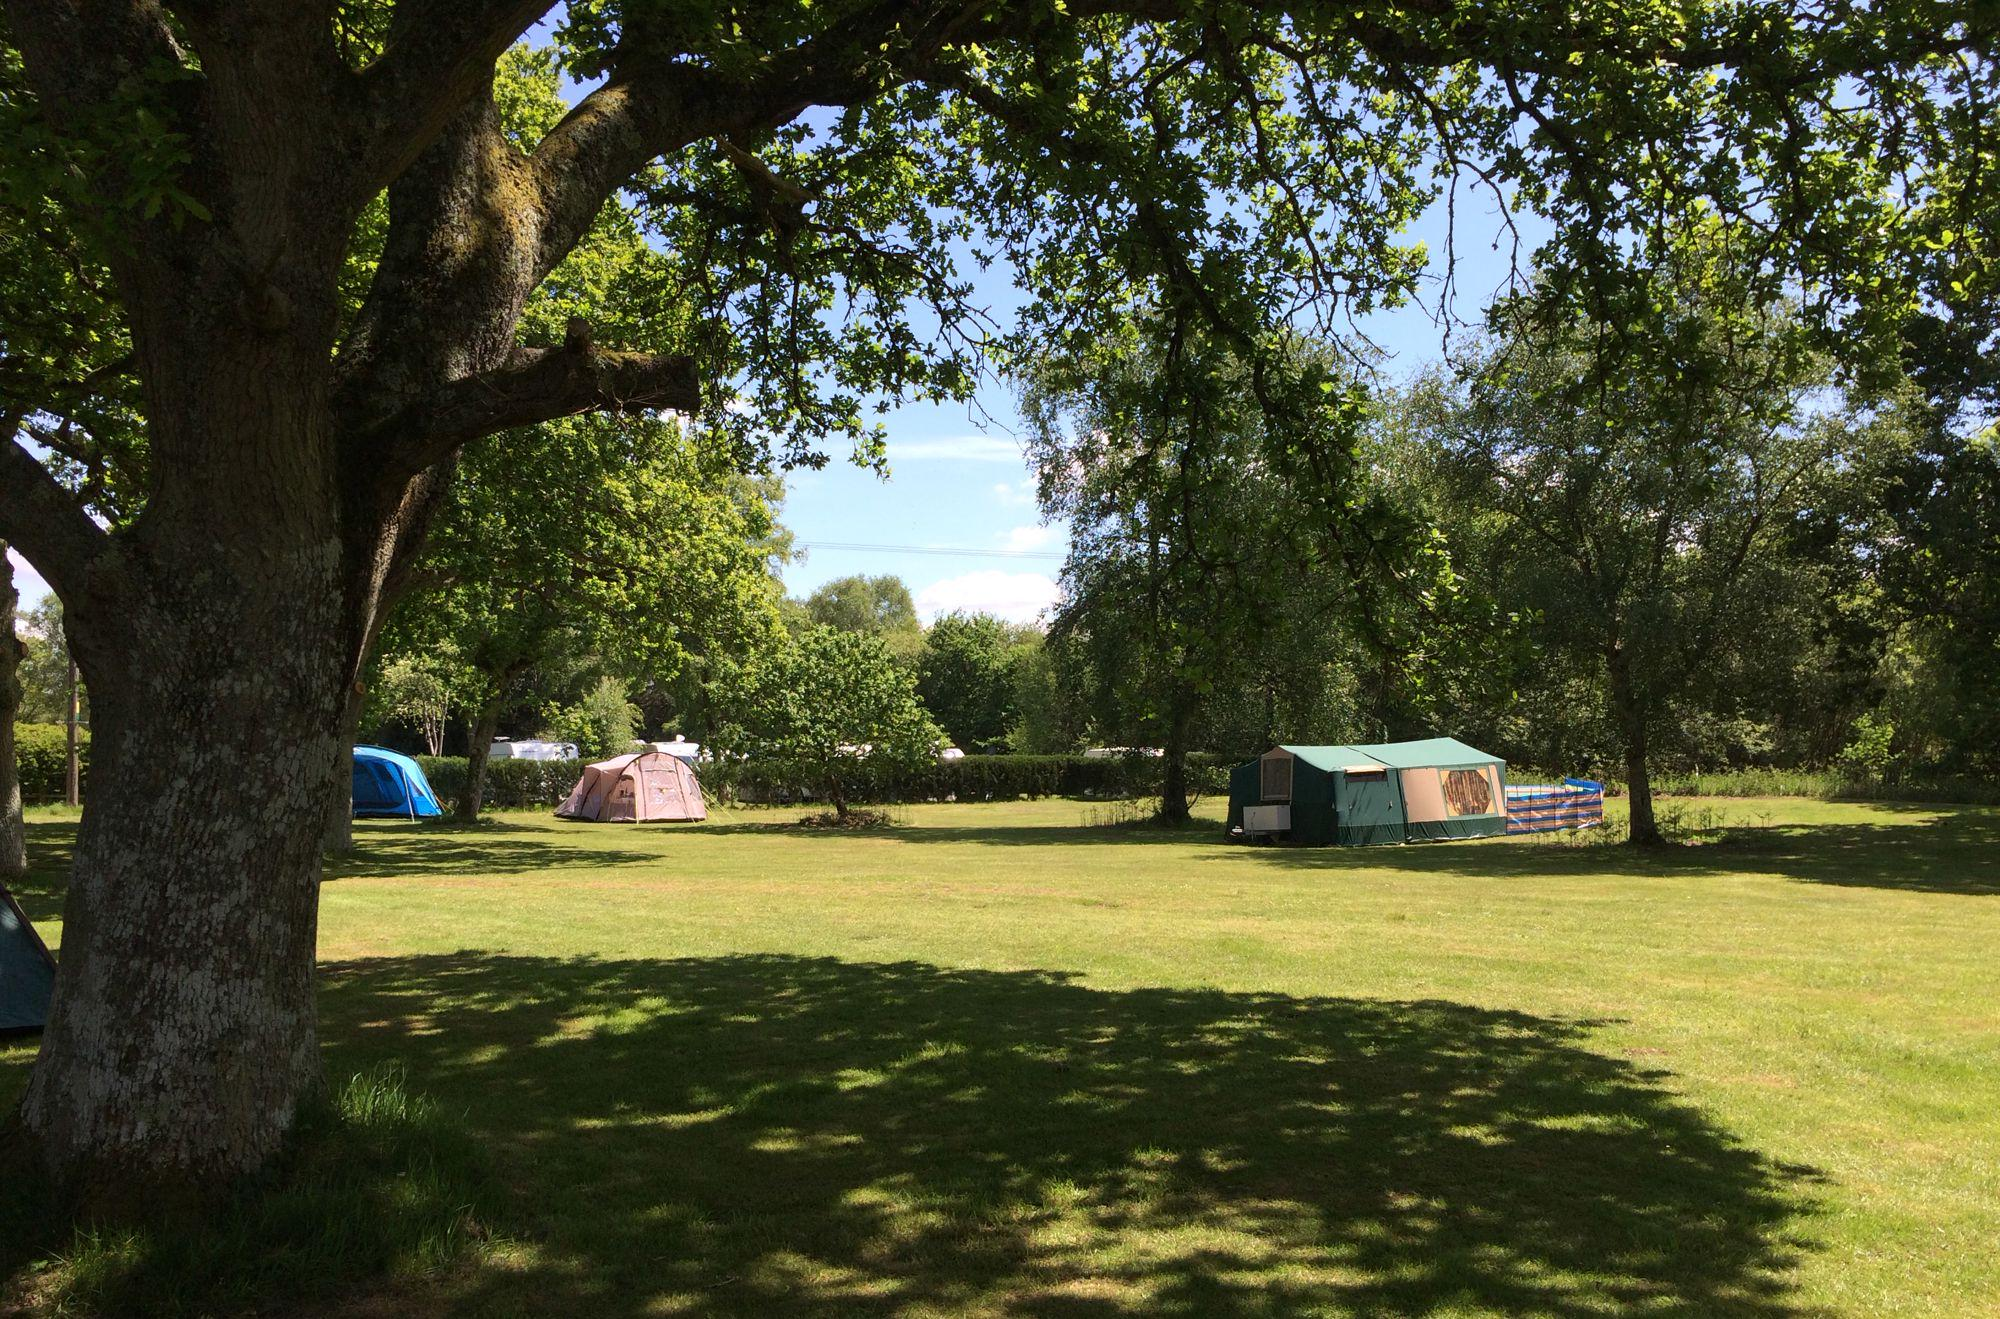 Ringwood Camping | Campsites in Ringwood, New Forest